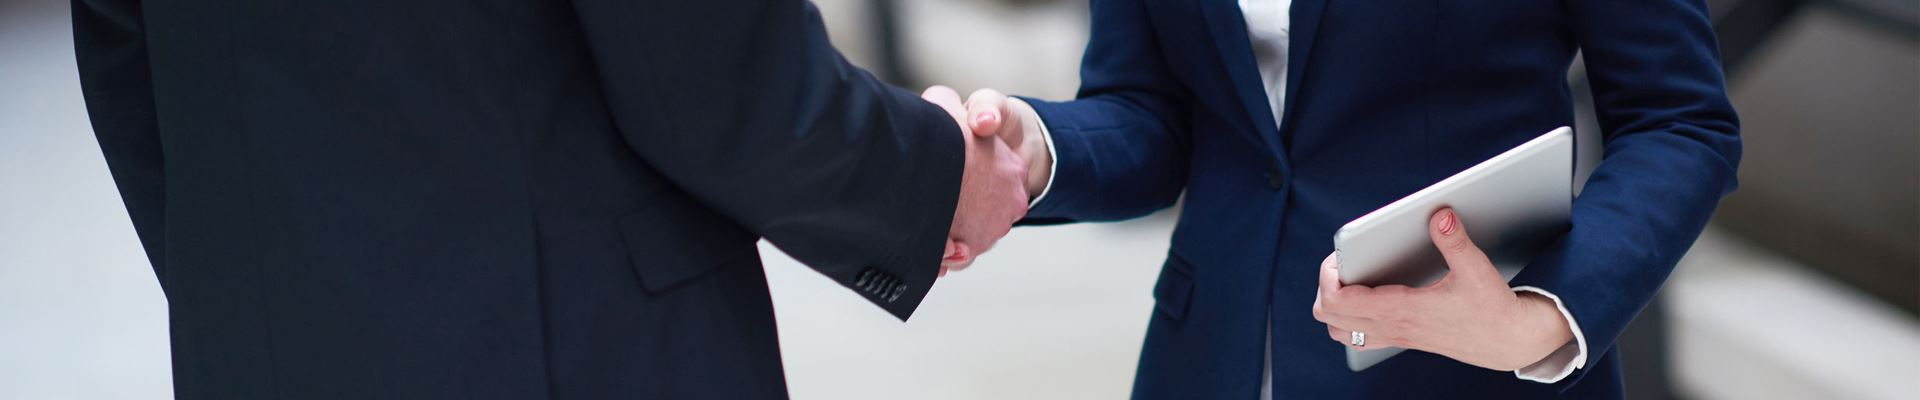 shaking hands key image